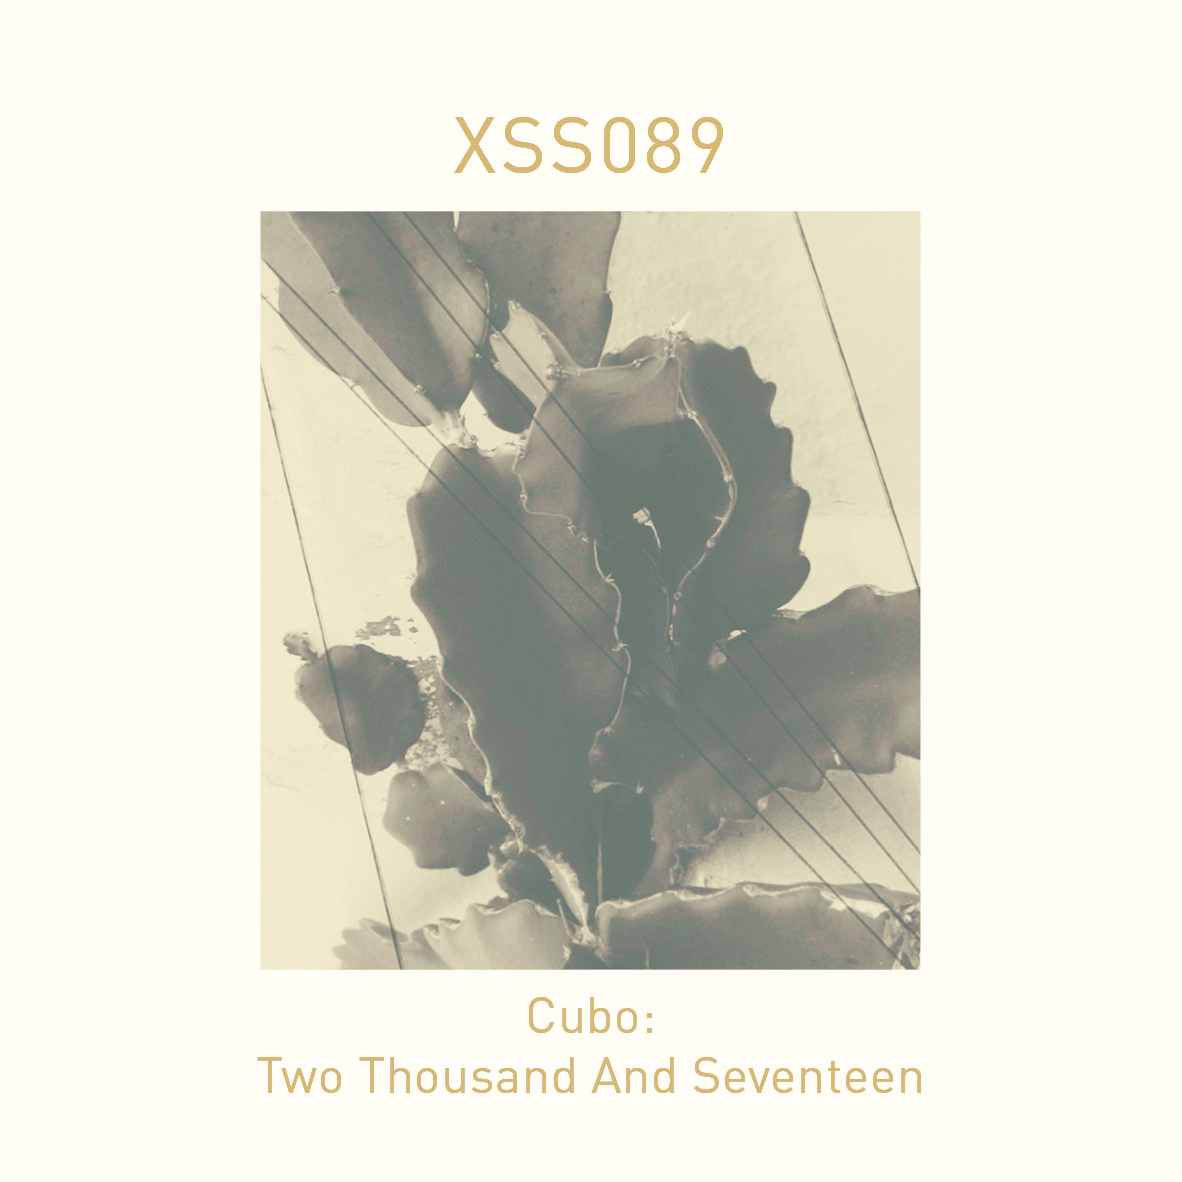 XSS089 | Cubo | Two Thousand And Seventeen